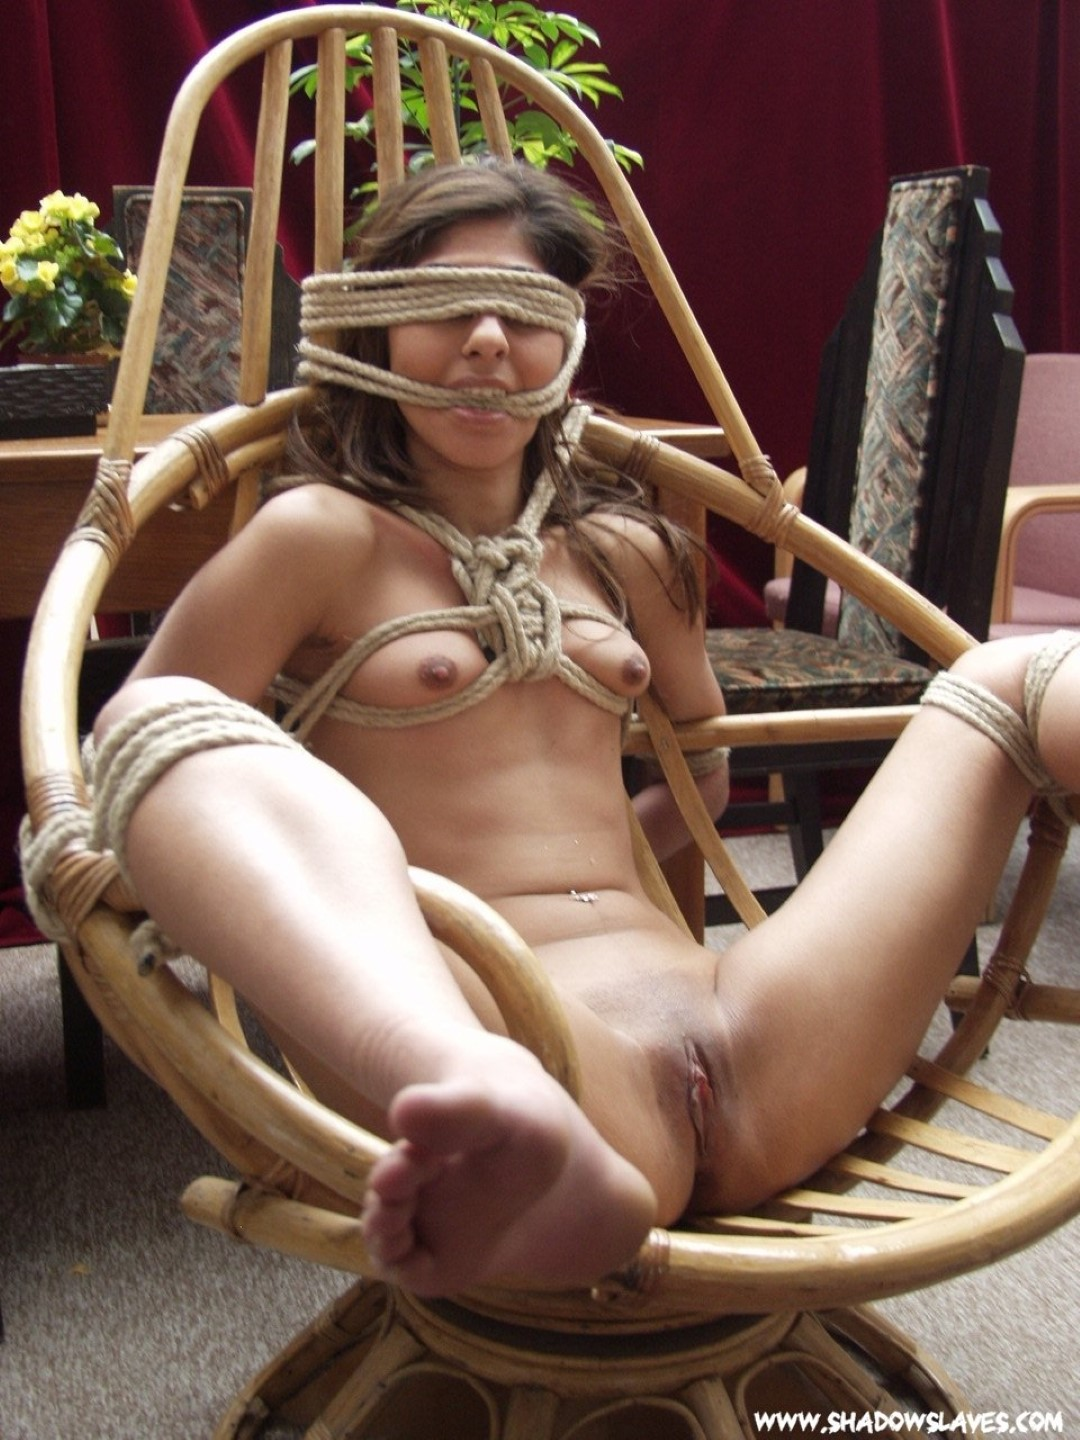 Strict rope bondage